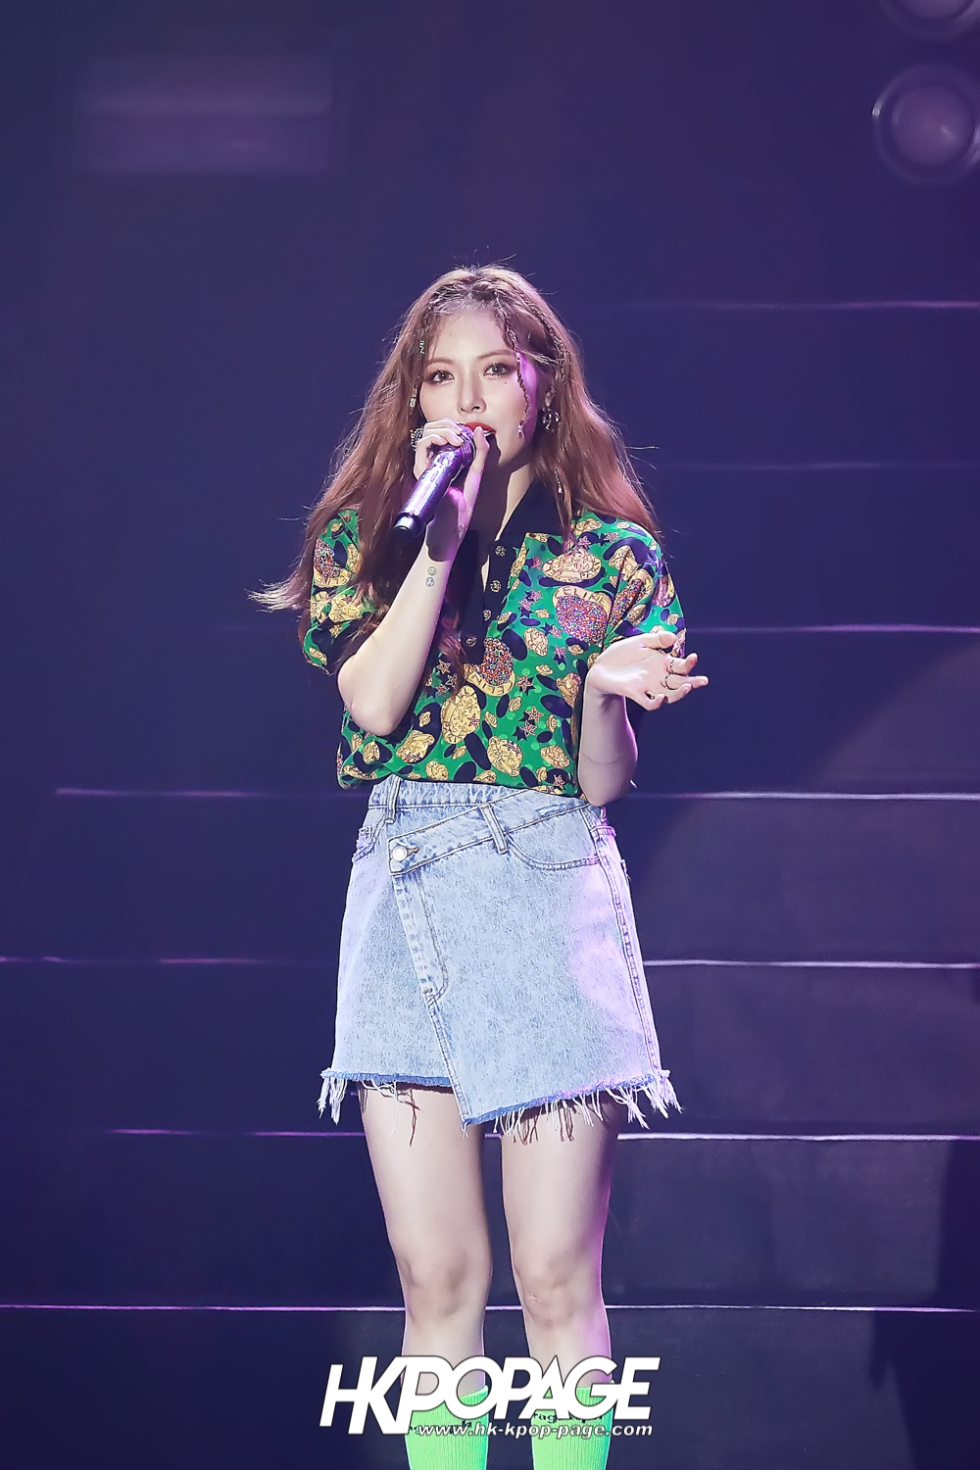 [HK.KPOP.PAGE] 180310_HyunA Music Party in Hong Kong - Lip & Hip_23